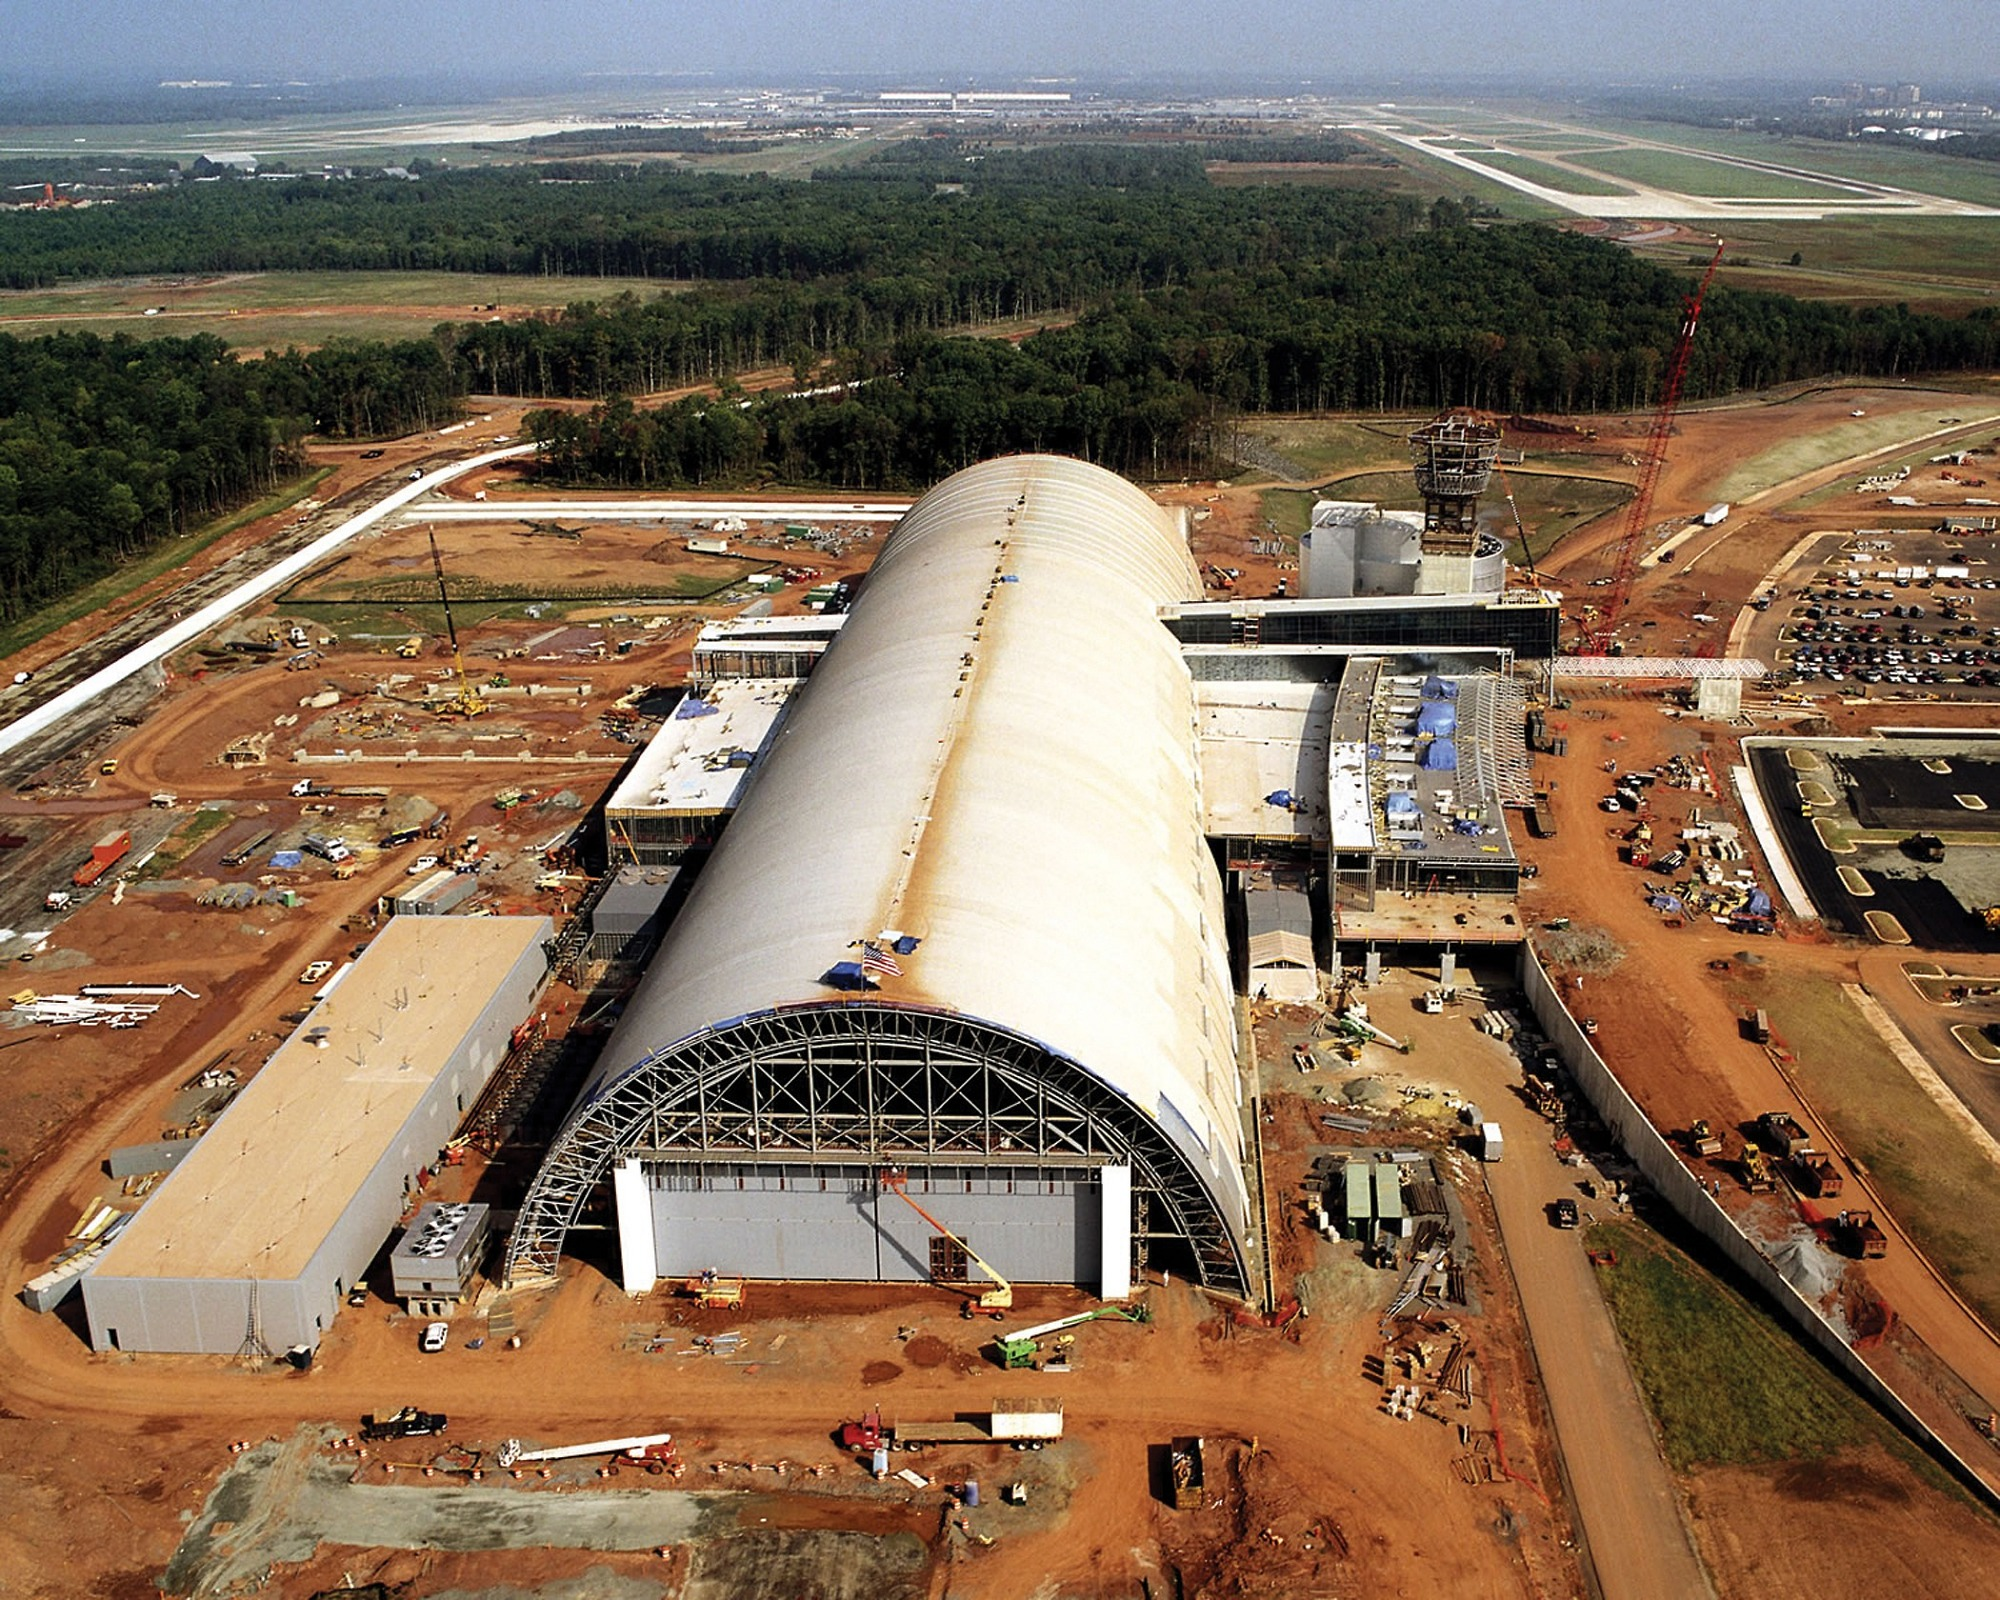 Aug 2 Steven F. Udvar-Hazy Center Under Construction